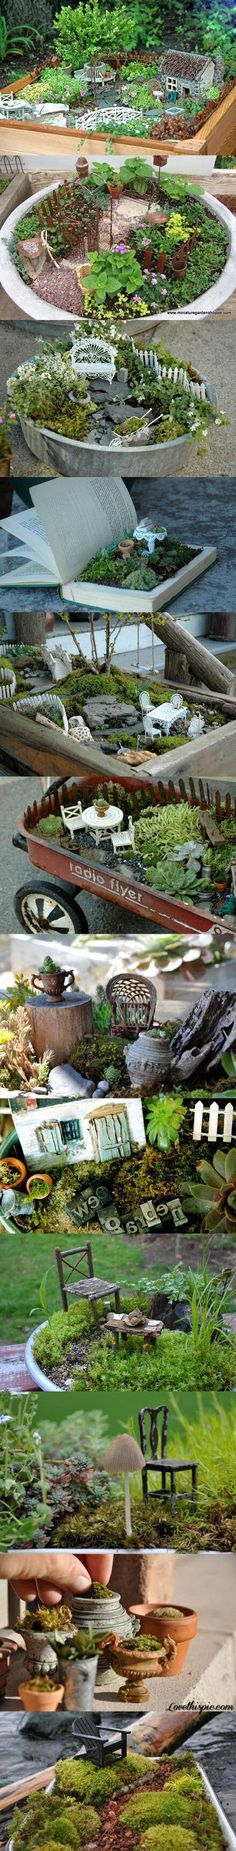 Mini Garden Ideas Pictures, Photos, and Images for Facebook, Tumblr, Pinterest, and Twitter